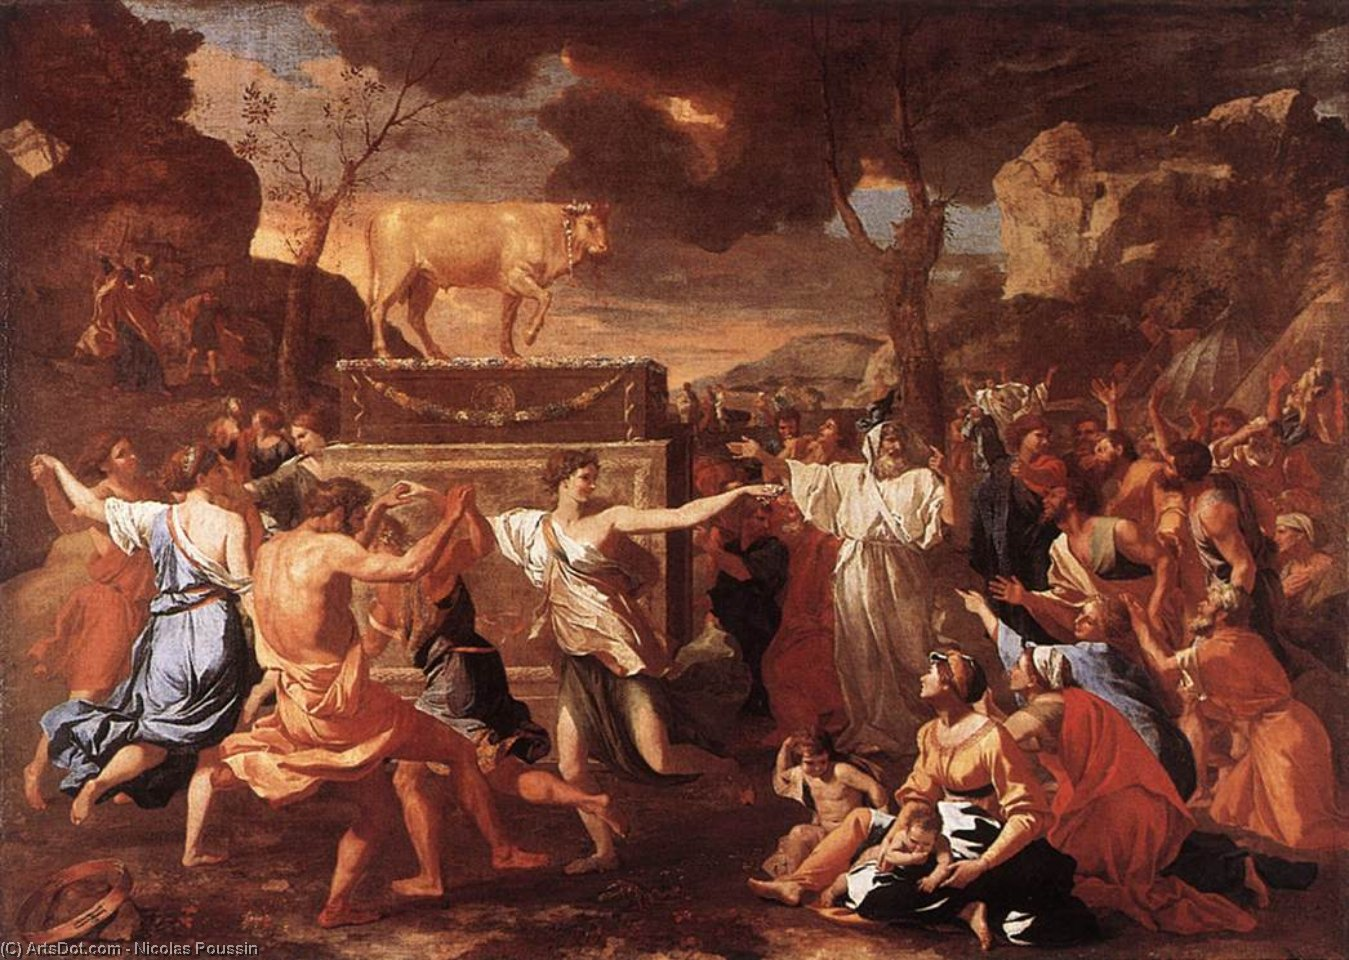 Wikioo.org - The Encyclopedia of Fine Arts - Painting, Artwork by Nicolas Poussin - The Adoration of the Golden Calf